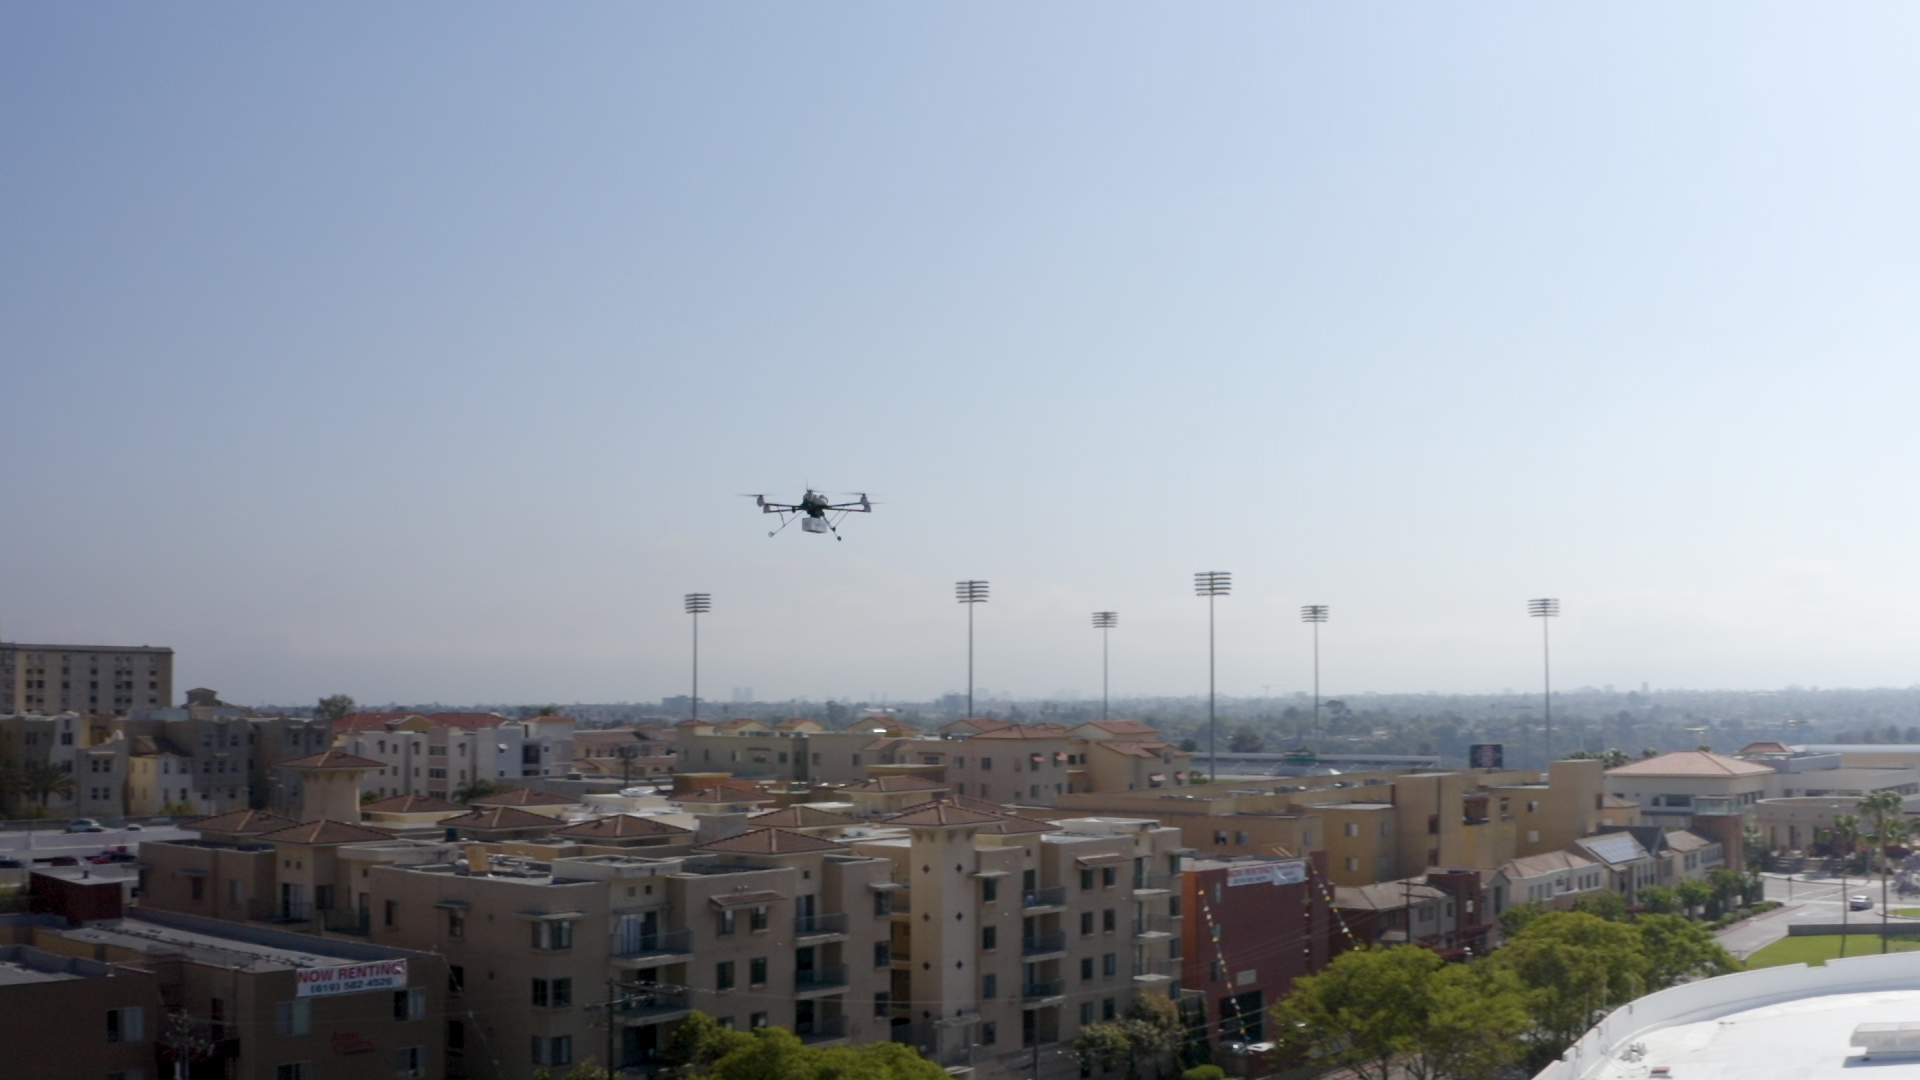 Uber Eats Drone in flight over the University of San Diego